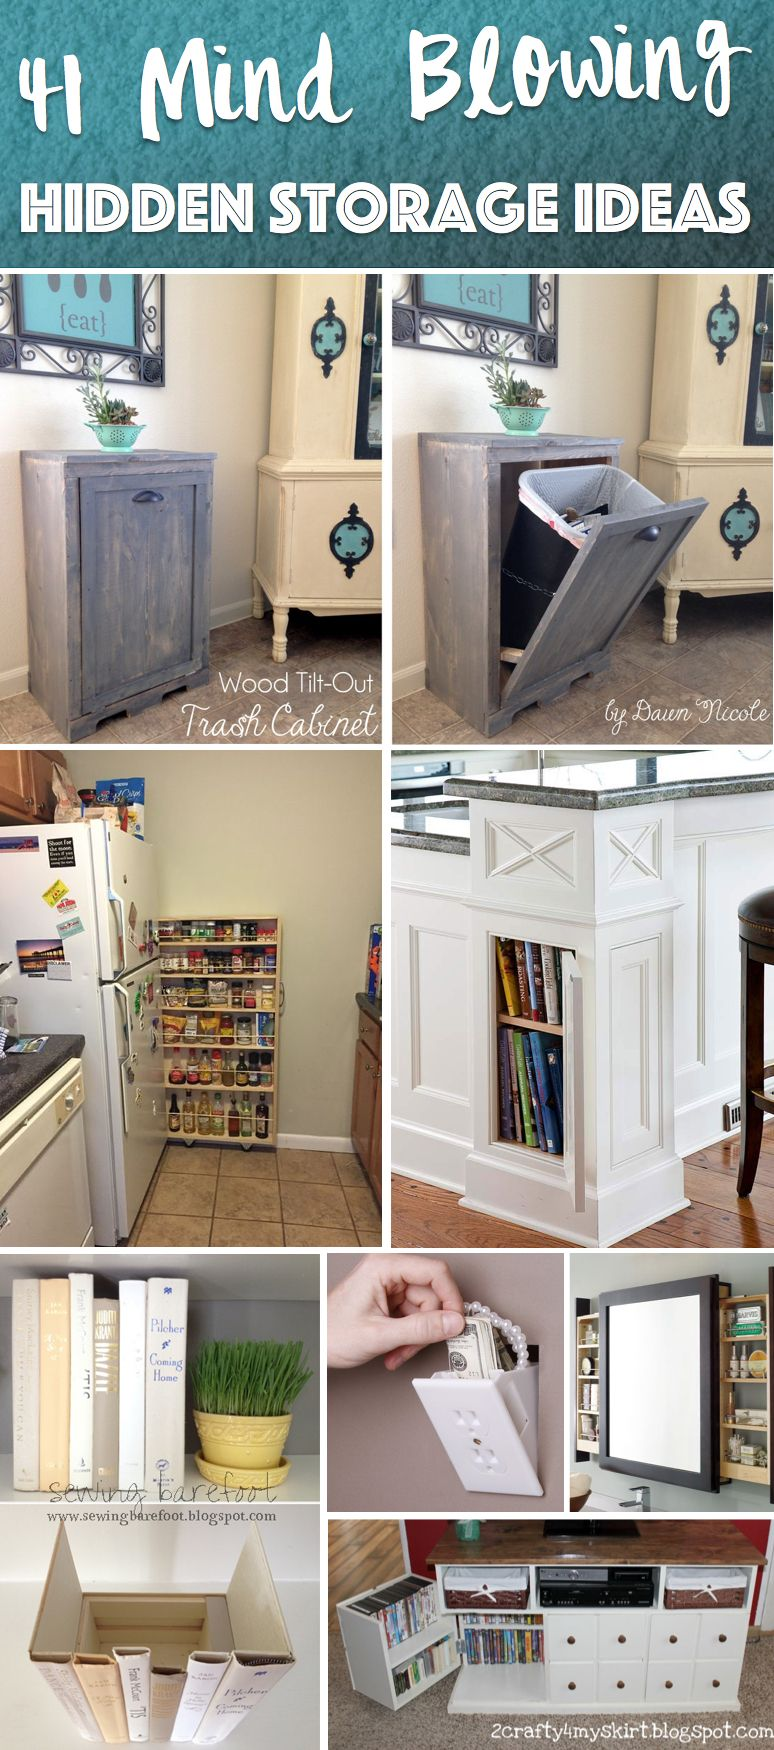 41 mind blowing hidden storage ideas making a clever use of your household space